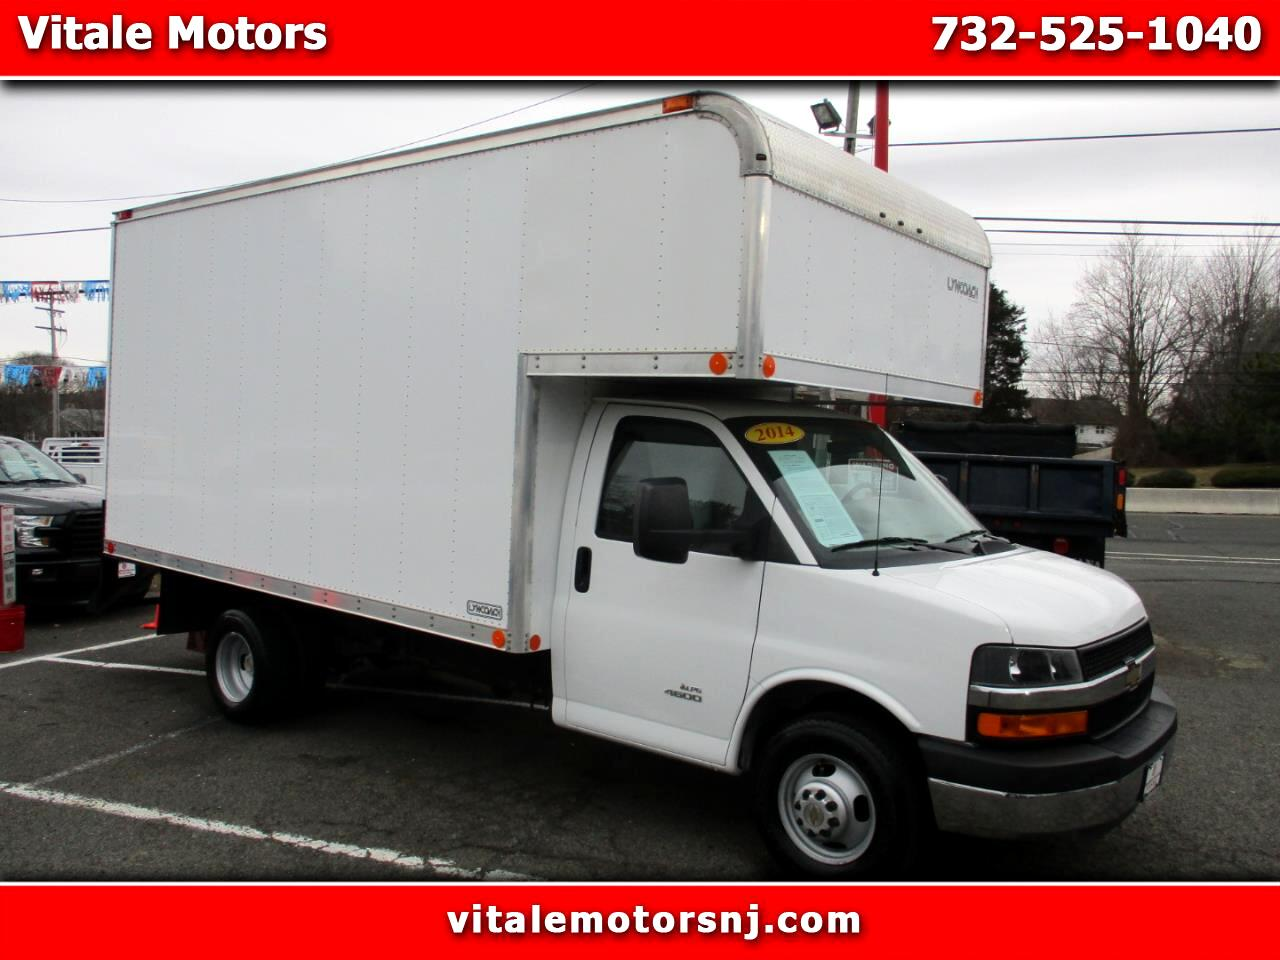 2014 Chevrolet Express G4500 BOX TRUCK 15 FOOT PROPANE FUEL TRUCK